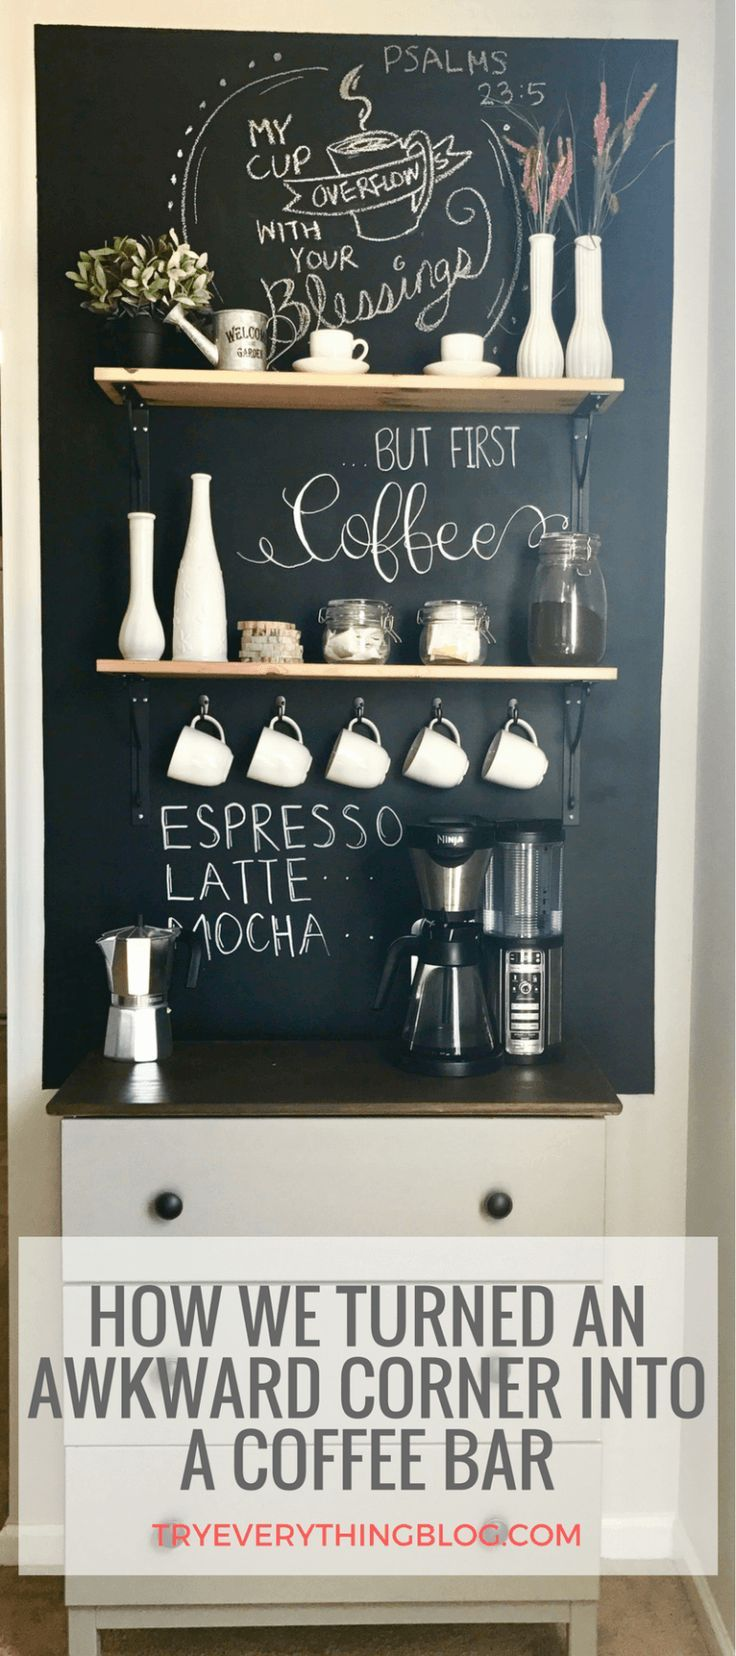 Transforming an awkward corner into a coffee bar at TryEverythingBlog.com